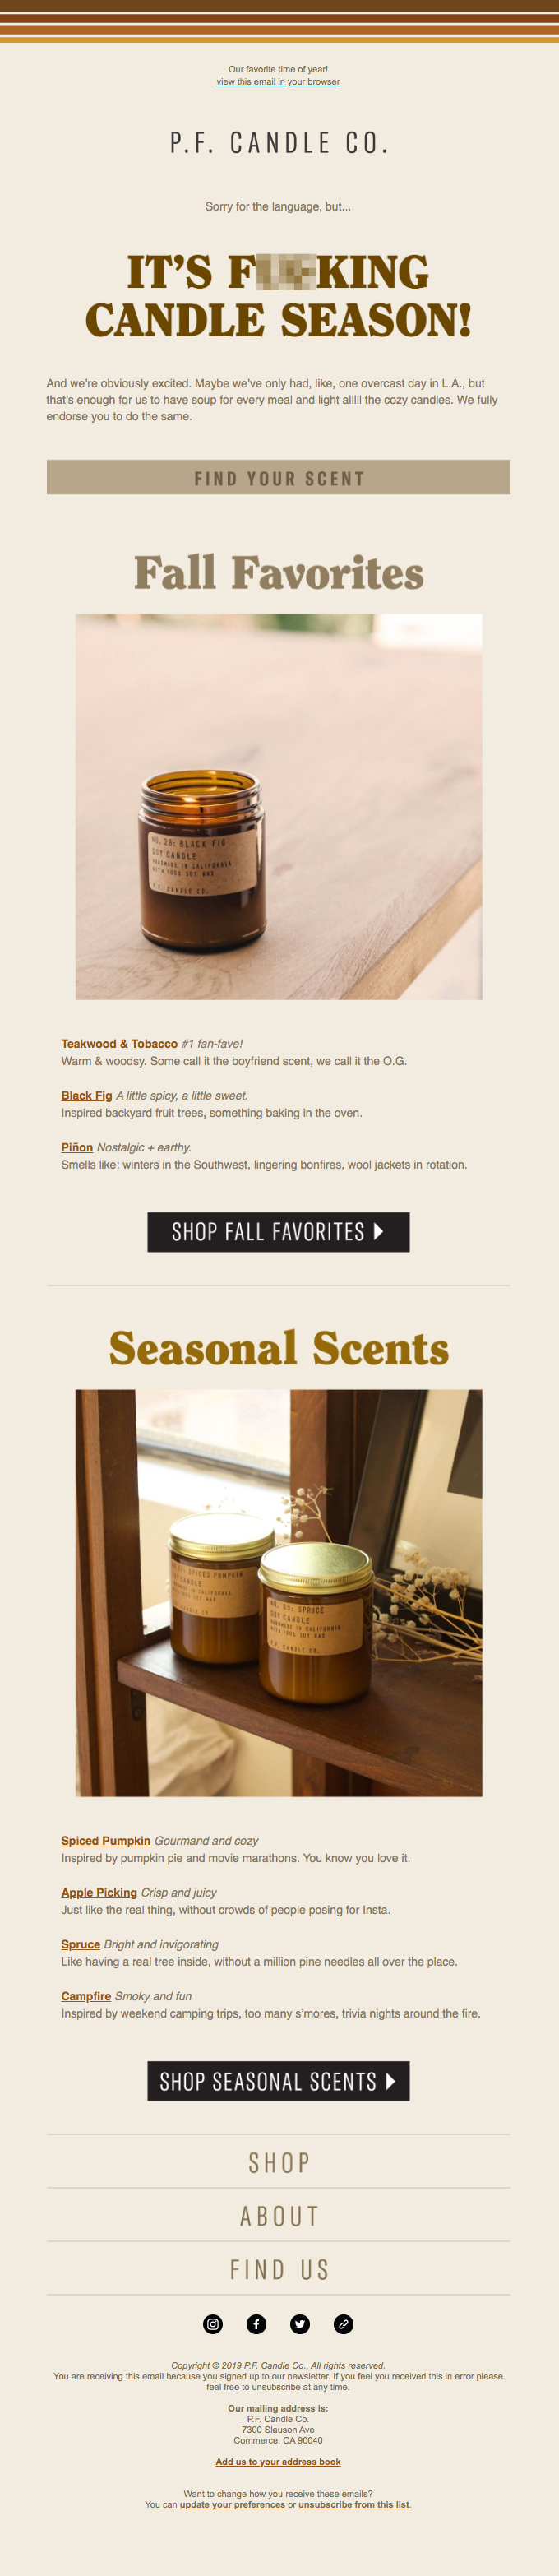 Announcing new candle scents through email.